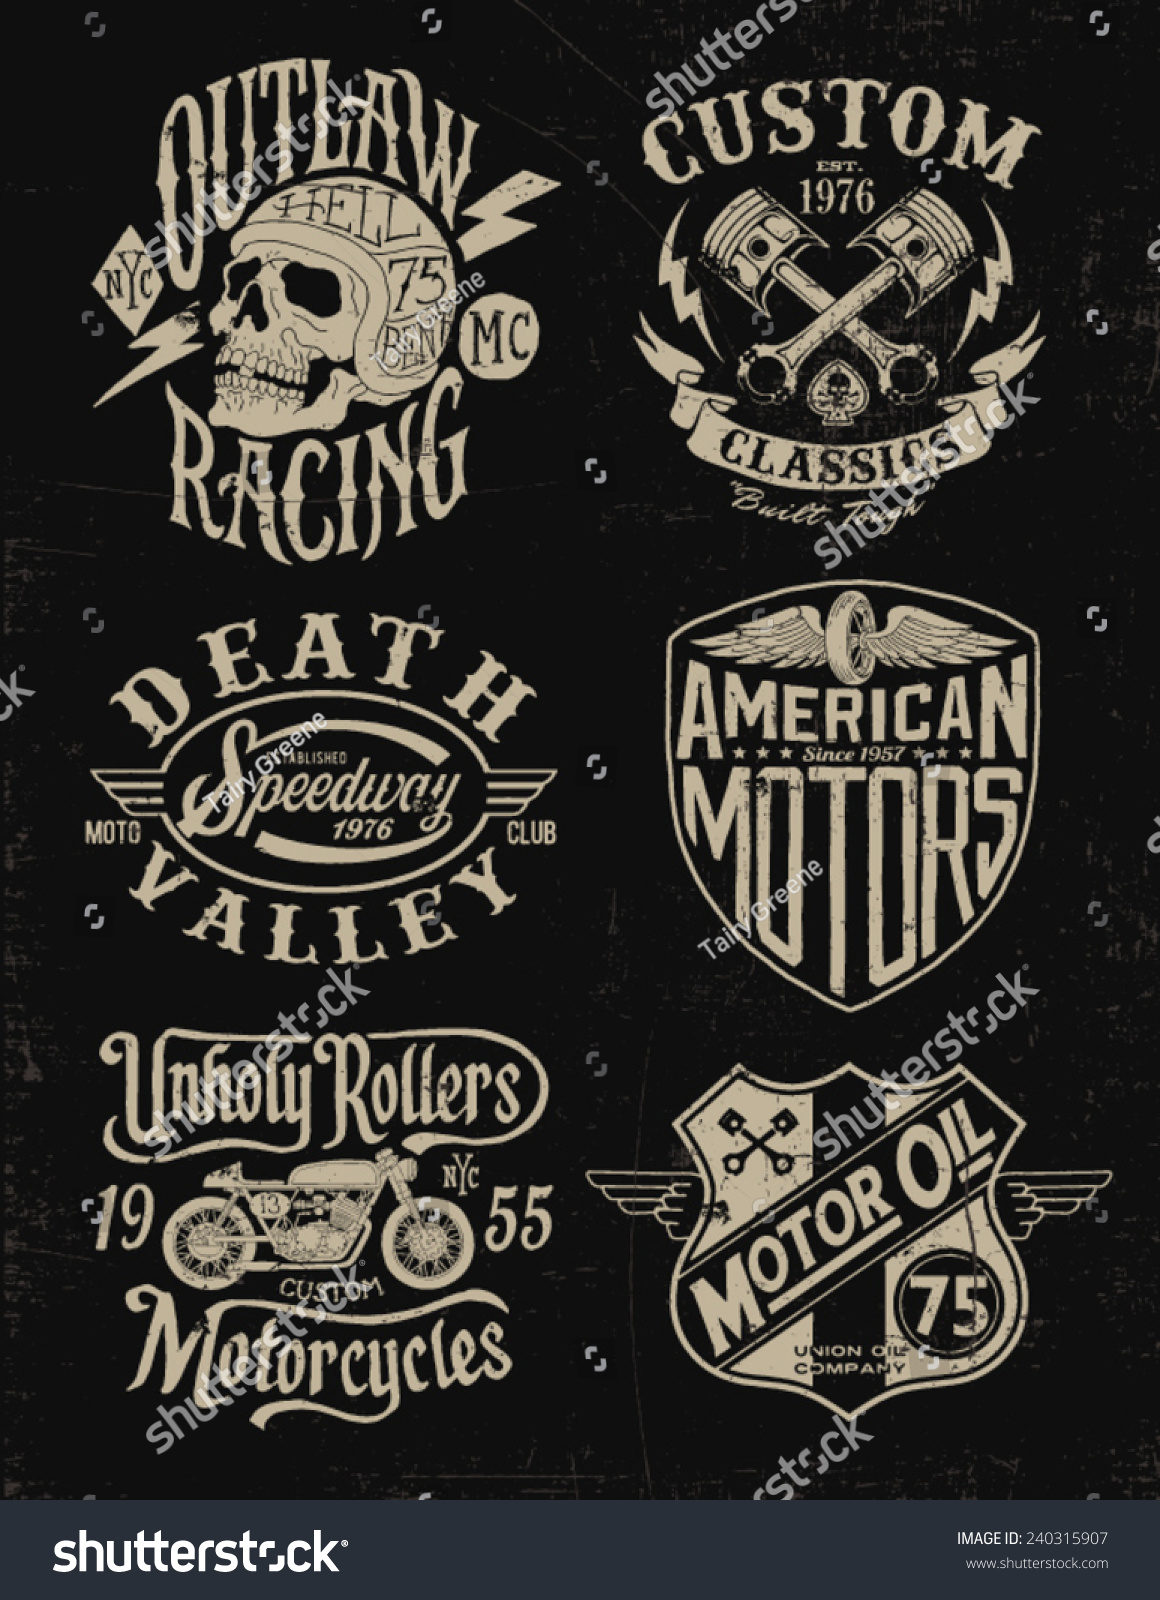 One Color Vintage Motorcycle Graphic Set 240315907